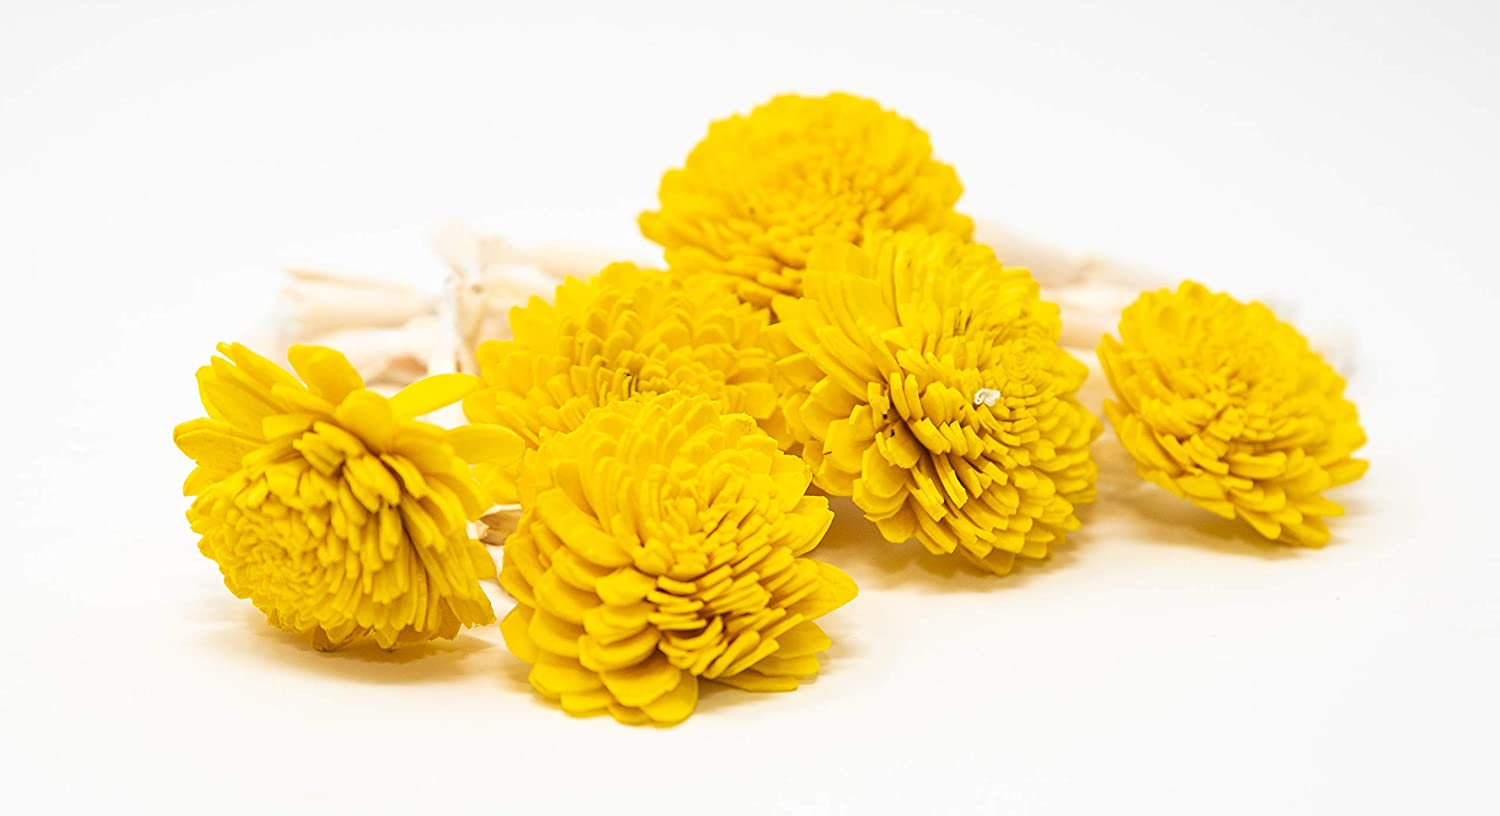 Desi Favors Set of 6 Lilly with Yellow Chamanthi/chrysanthamums at The end - 1 Foot Each - Diwali/Pooja Backdrop Decor